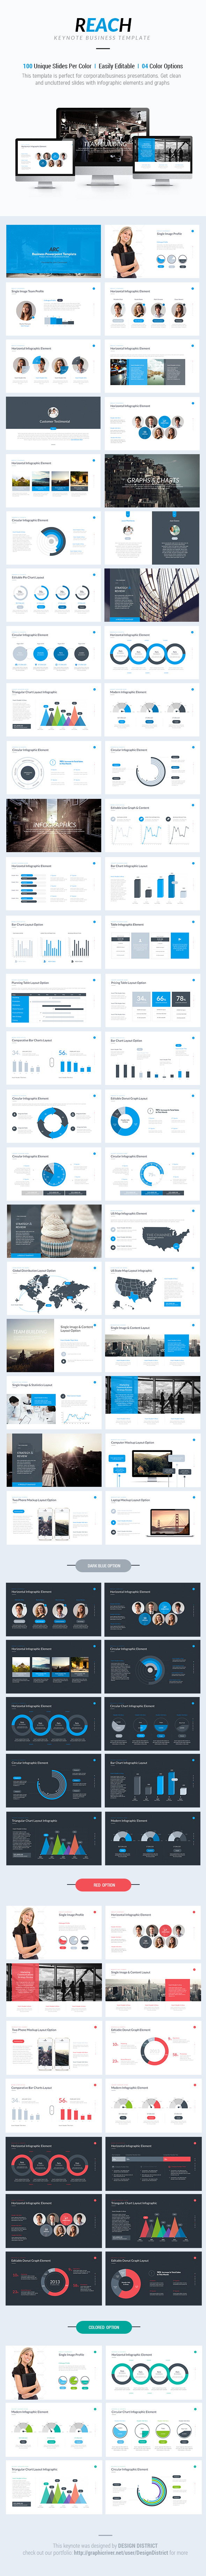 Keynote Business Template - Business Keynote Templates